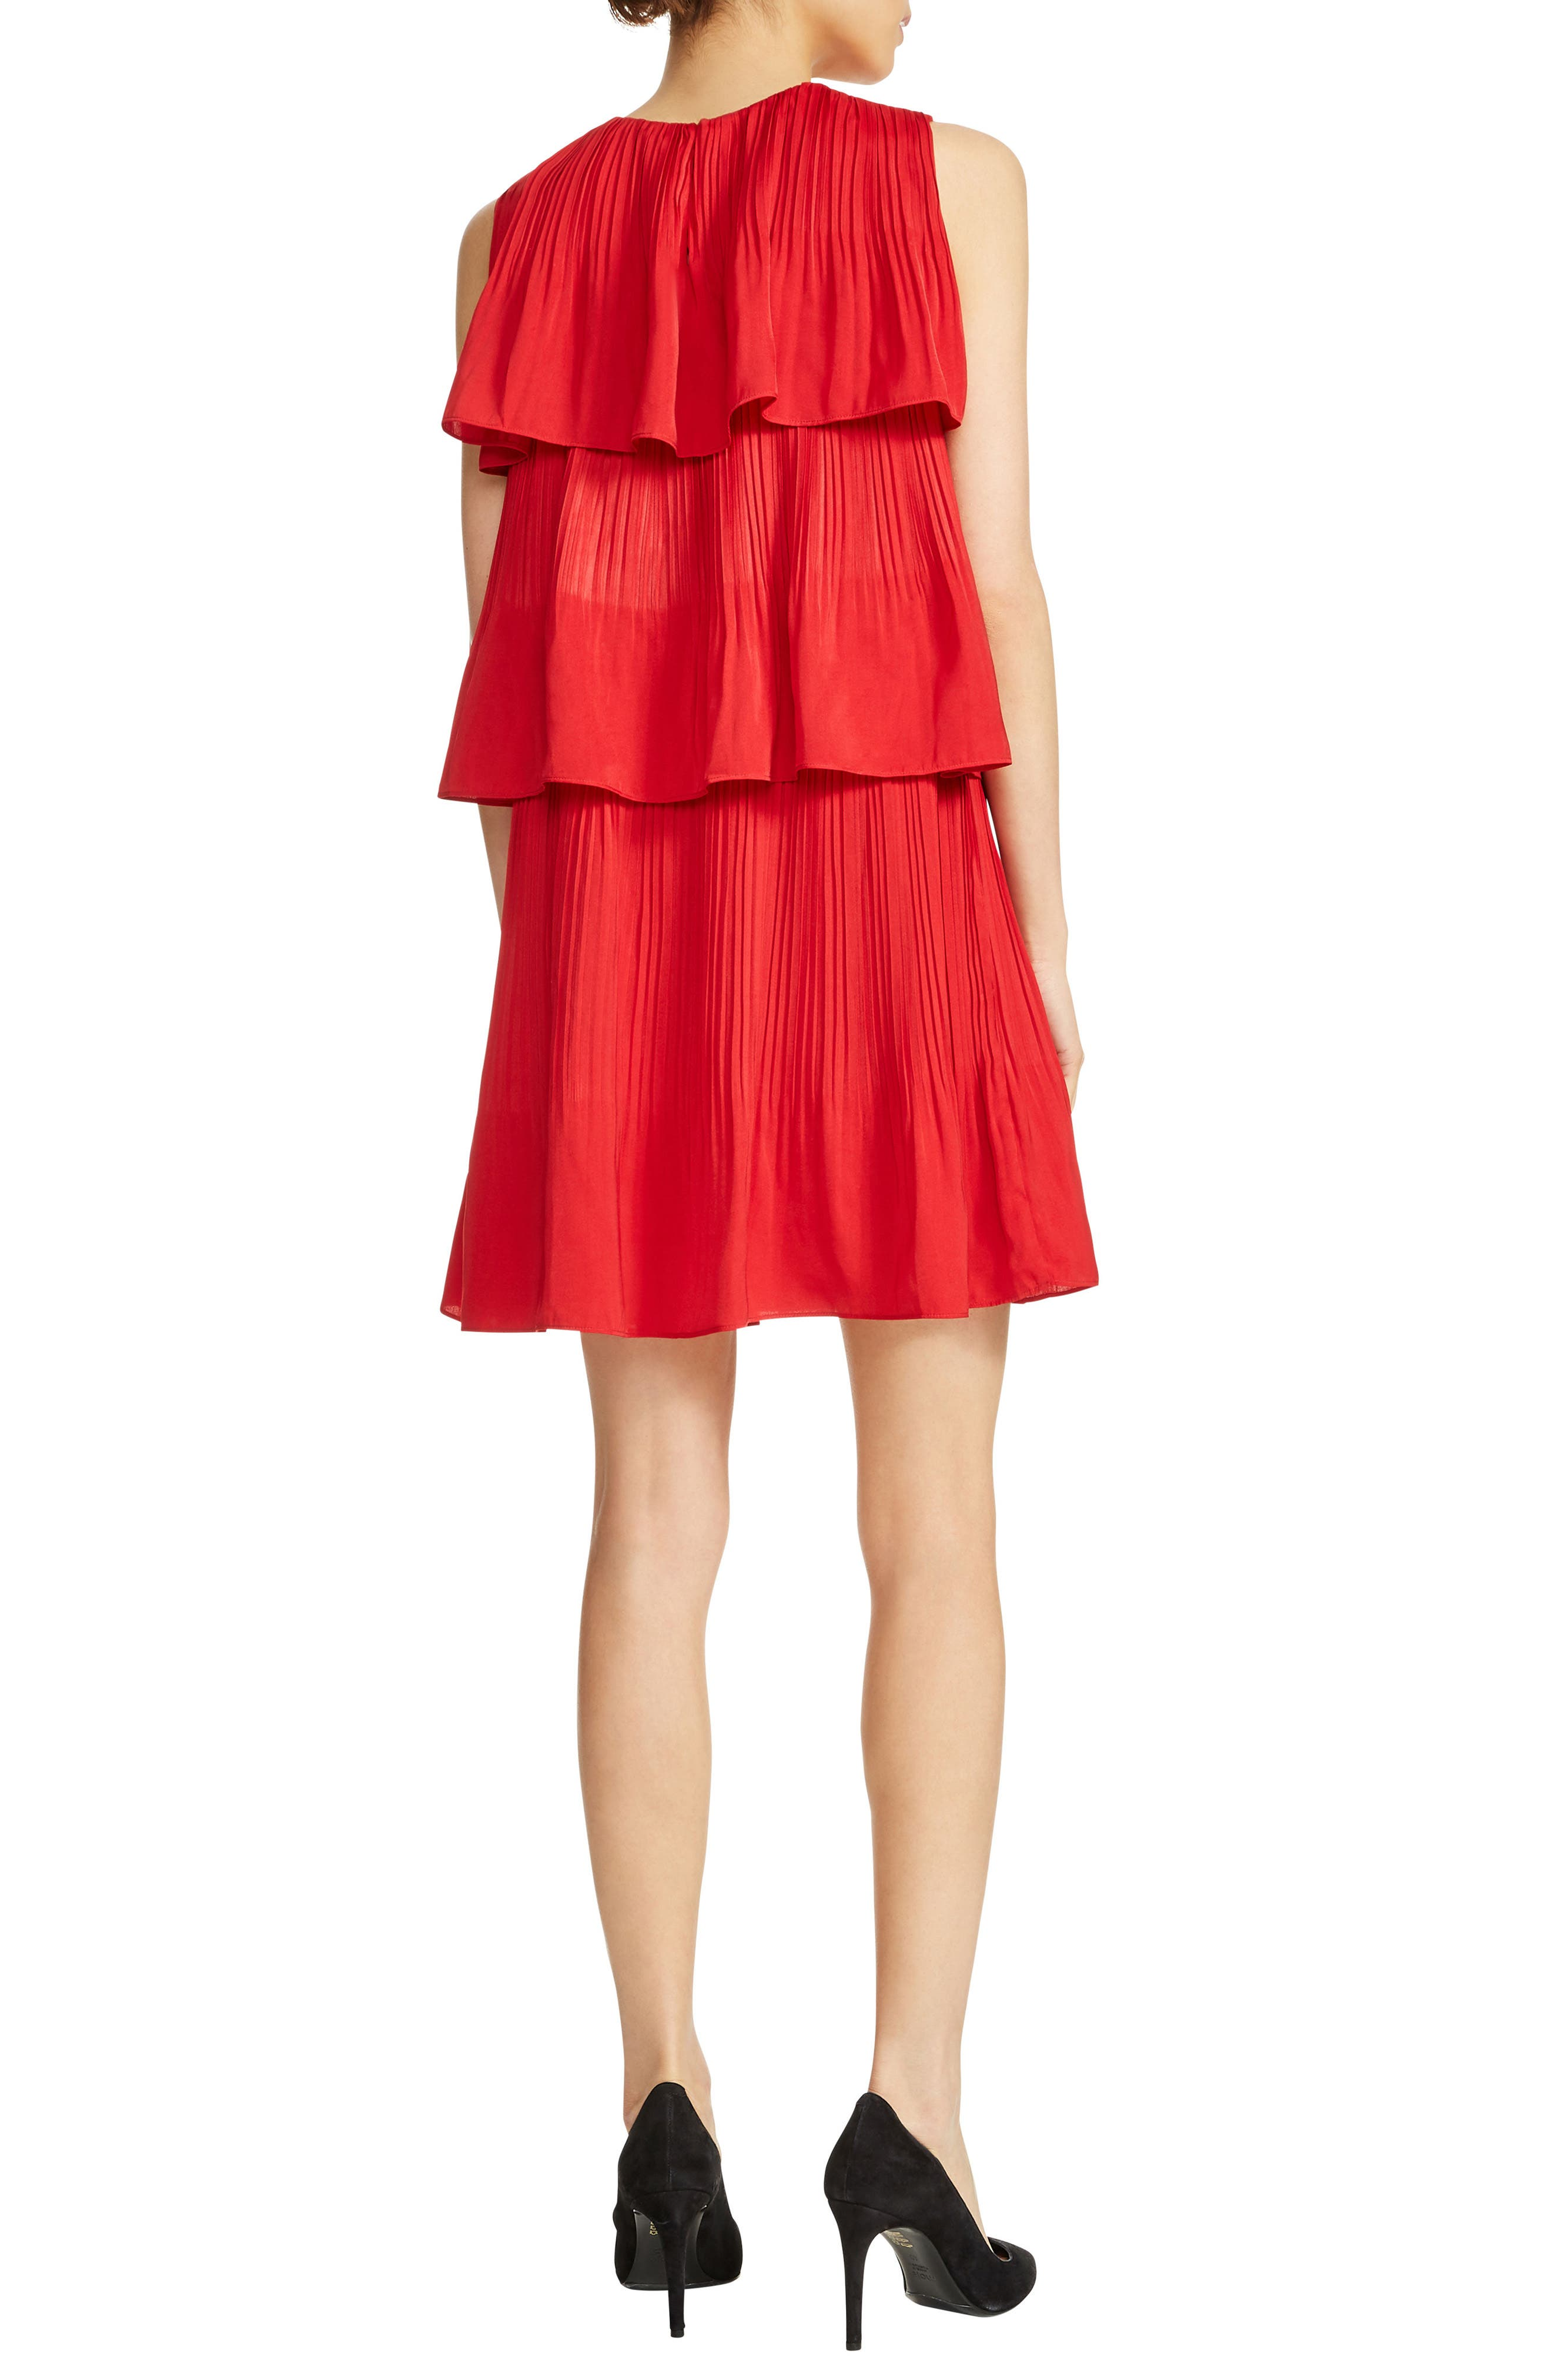 Rockano Tired Ruffle Dress,                             Alternate thumbnail 2, color,